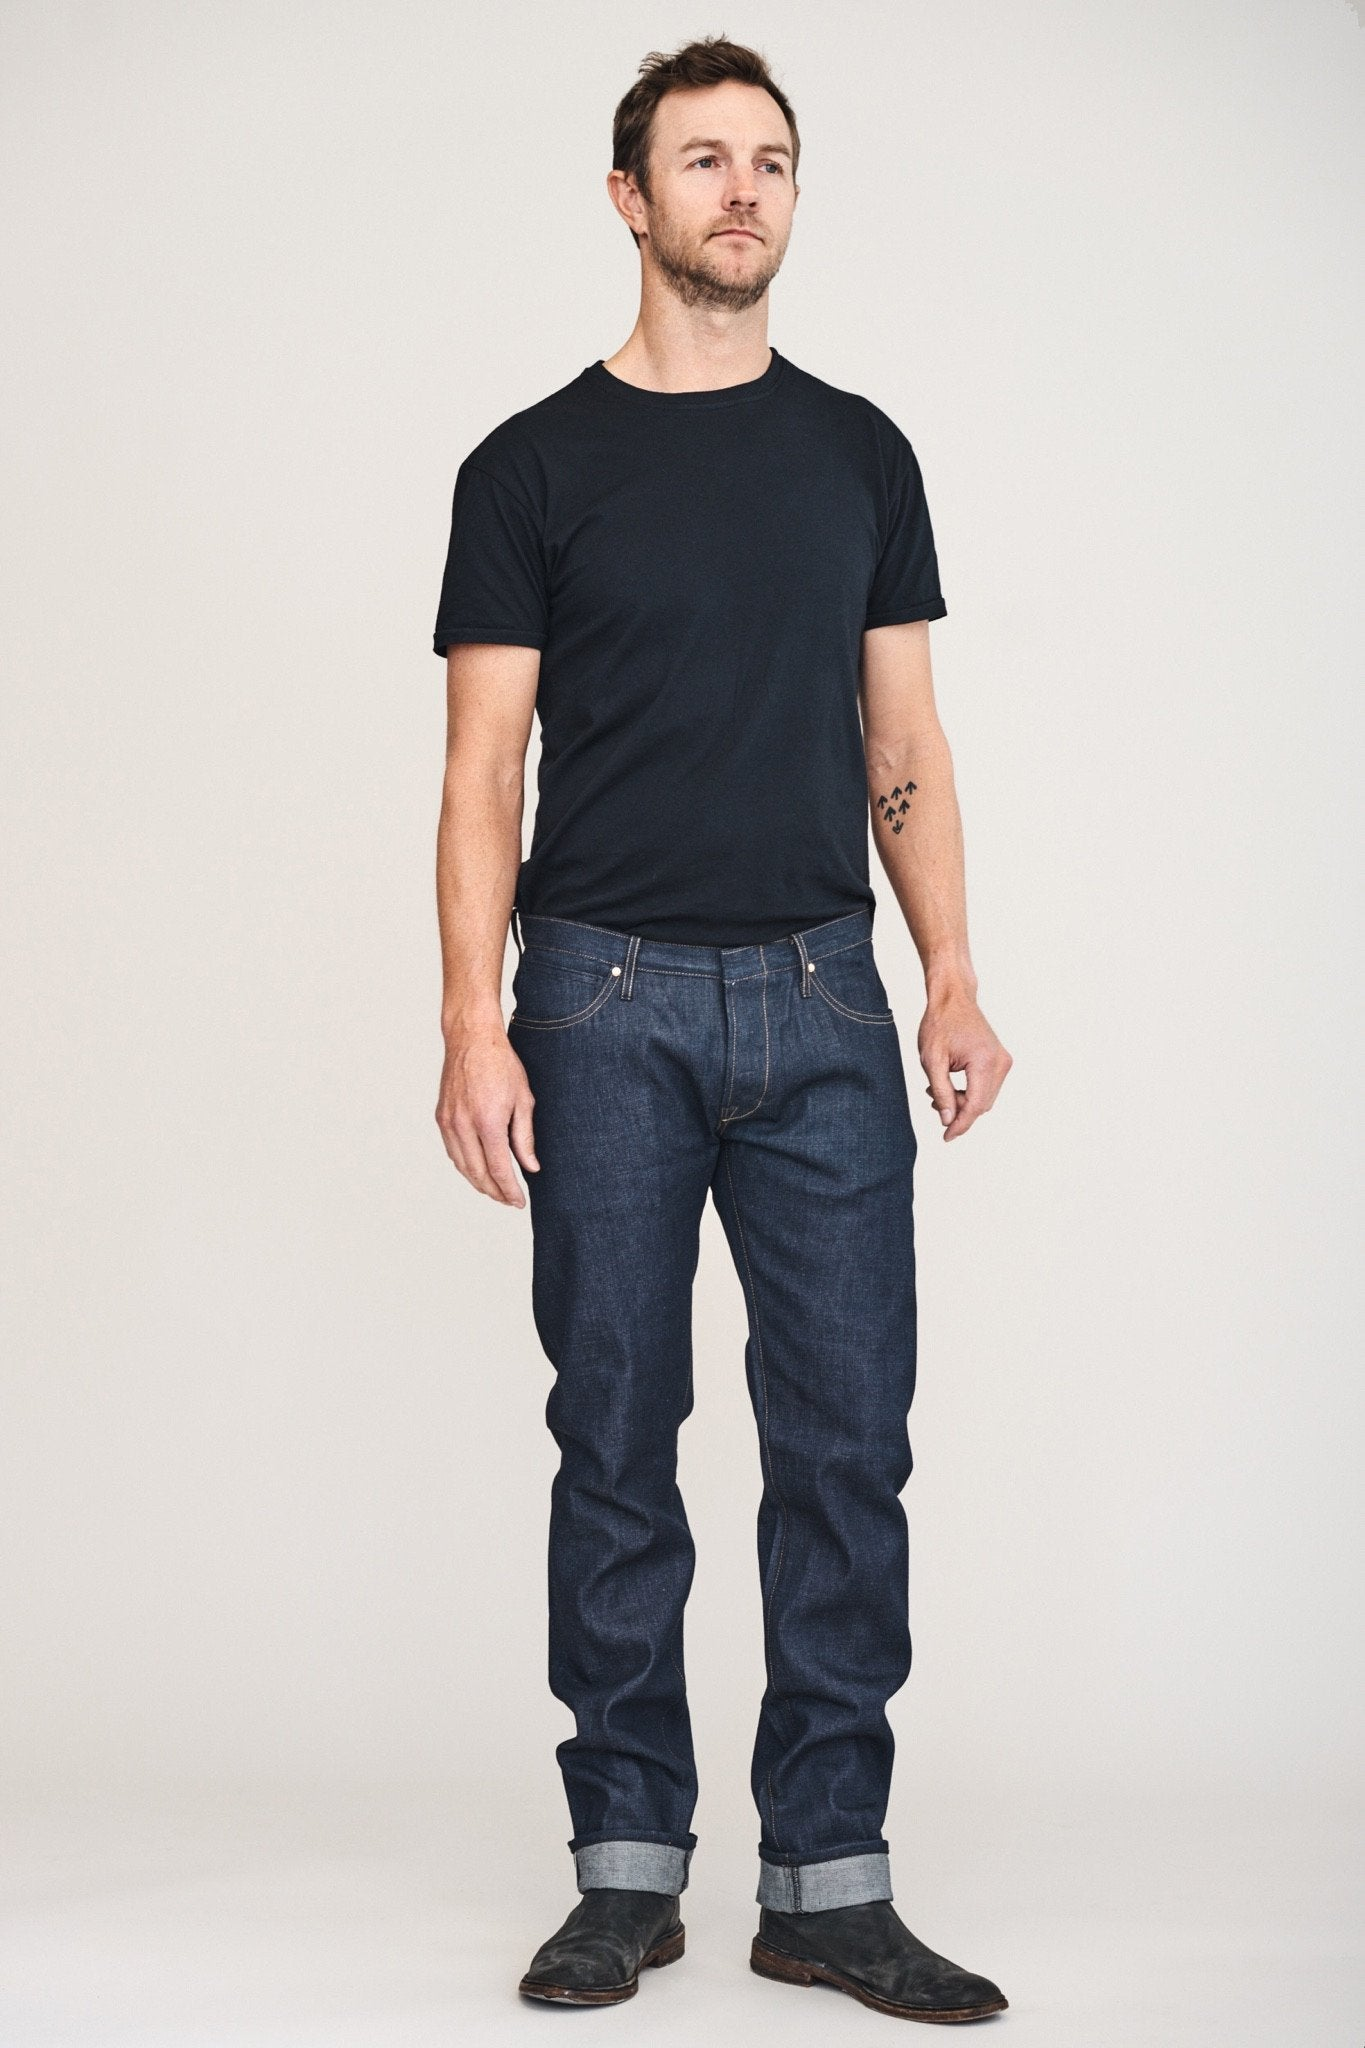 BLKSMTH Slim Tim 13.75 oz Indigo Selvedge